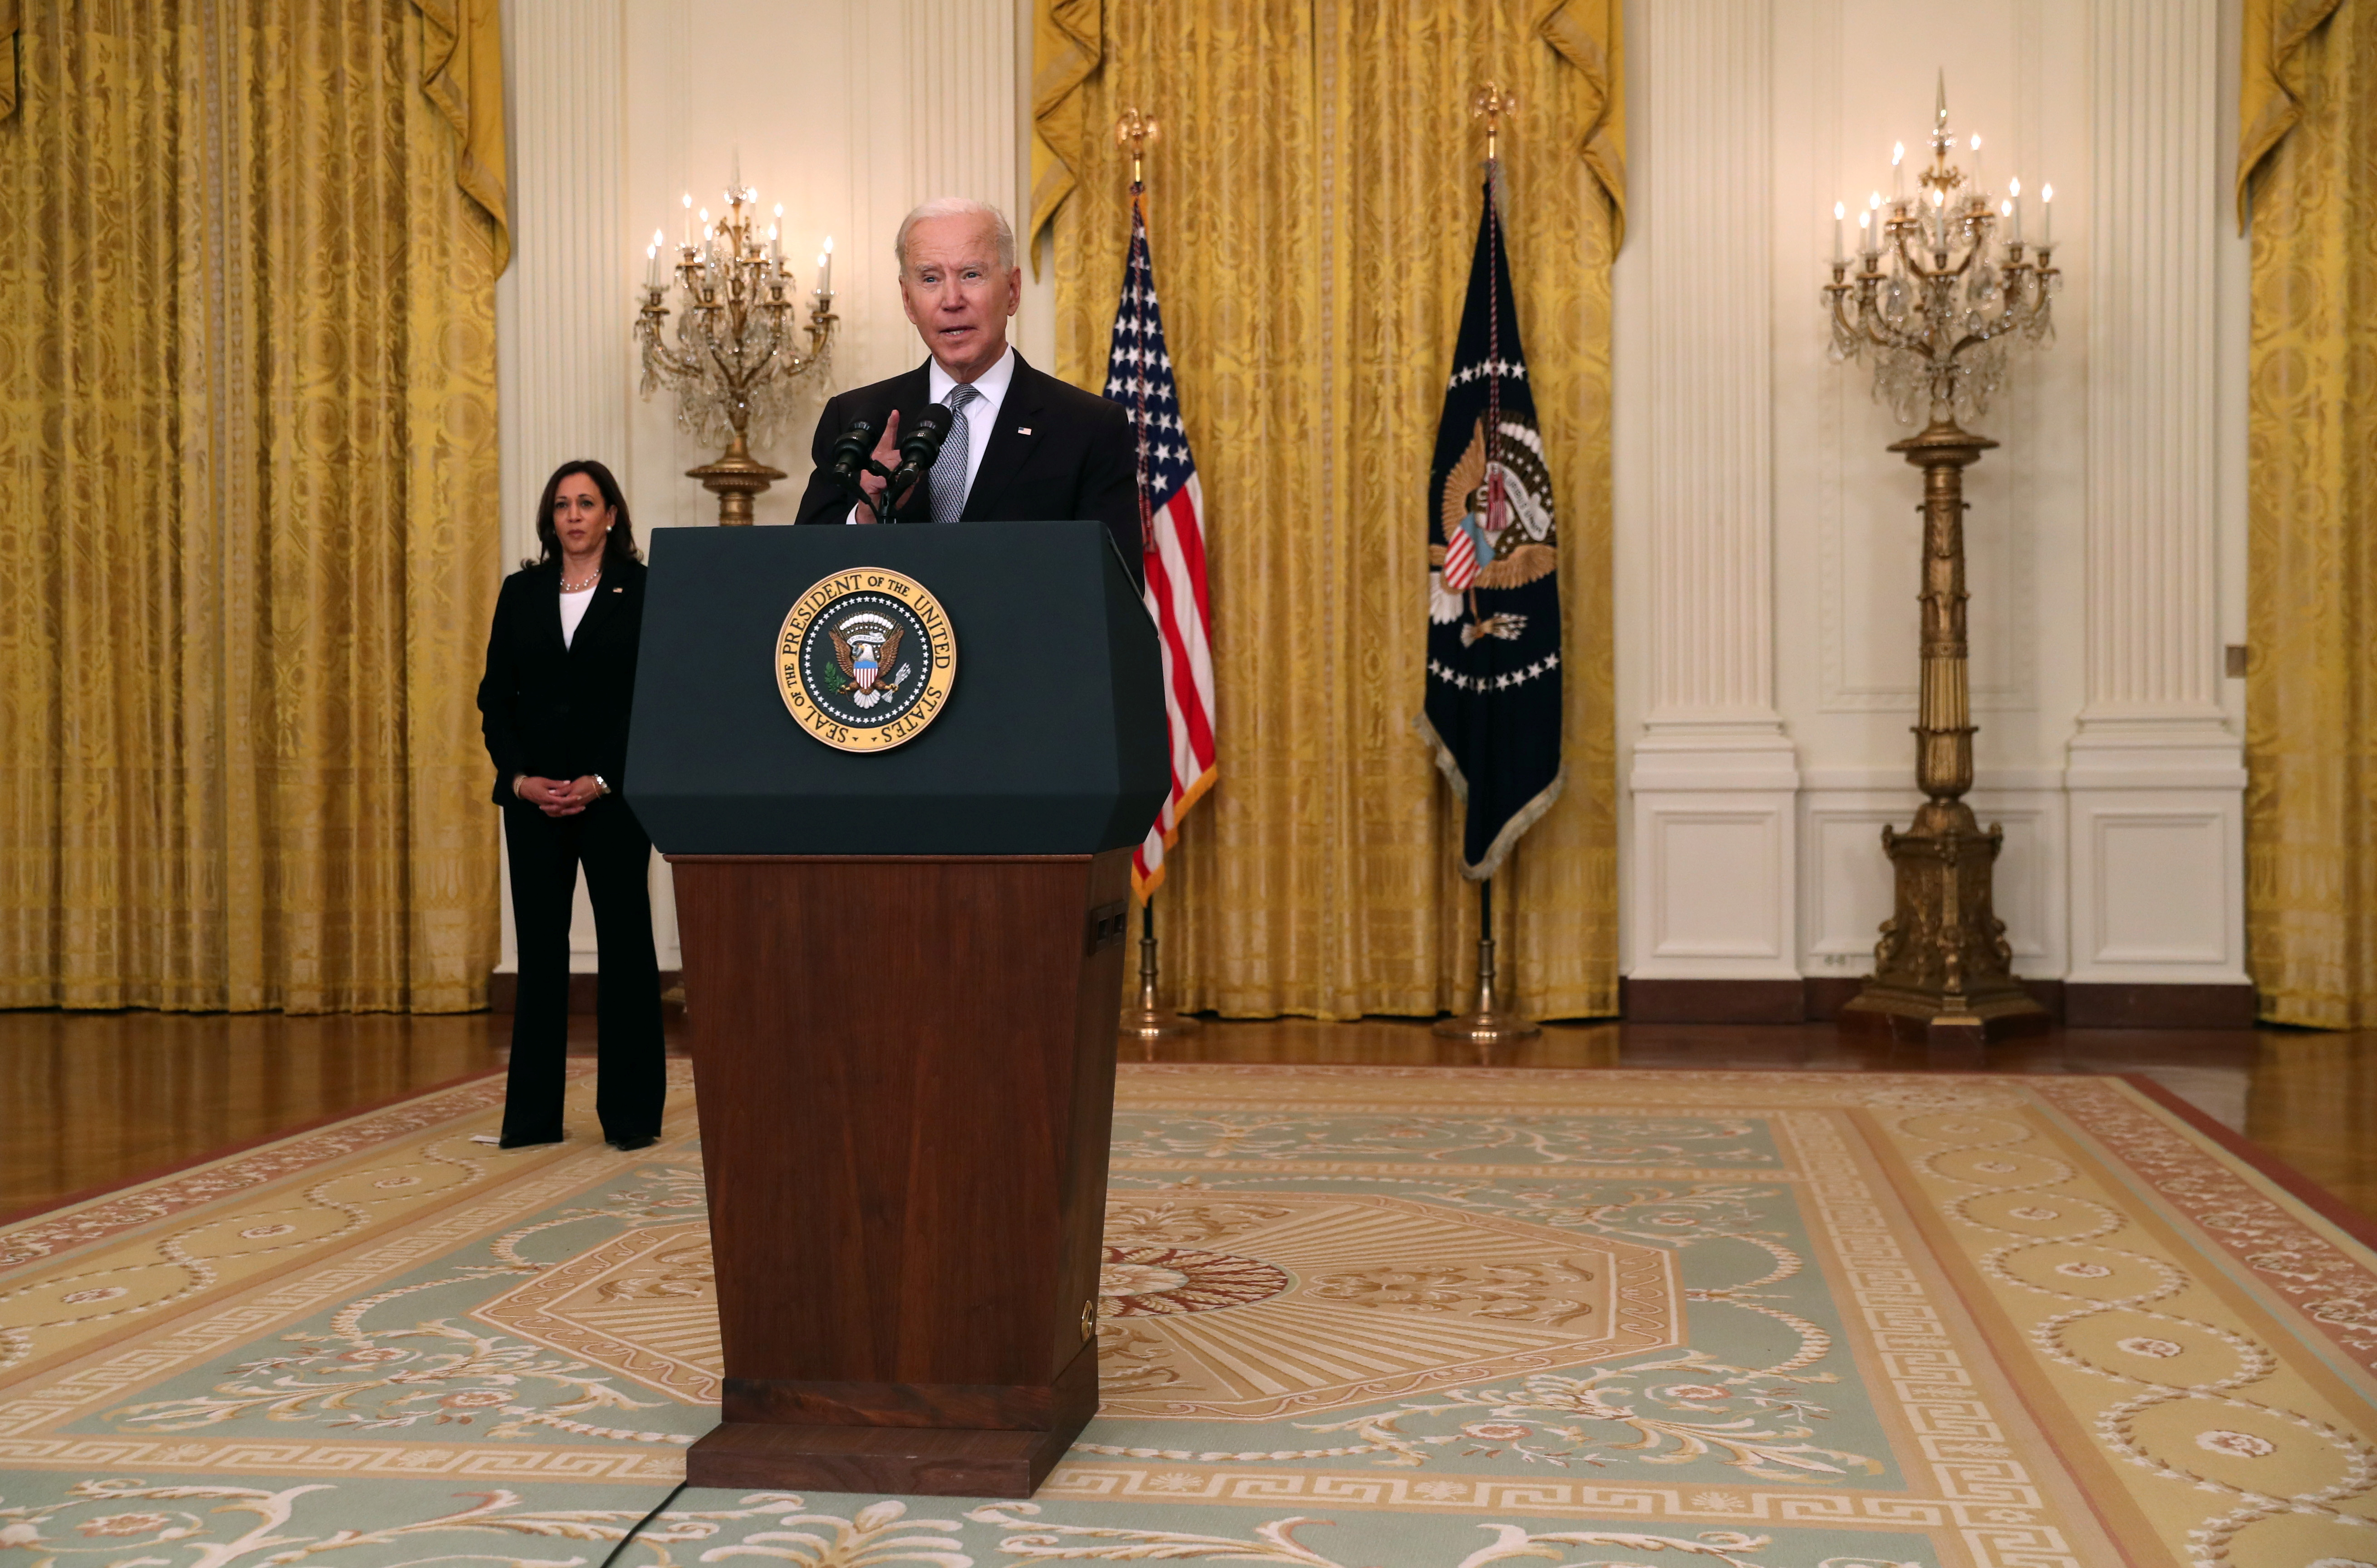 U.S. President Joe Biden delivers remarks from the East Room of the White House in Washington, U.S. May 17, 2021. REUTERS/Leah Millis